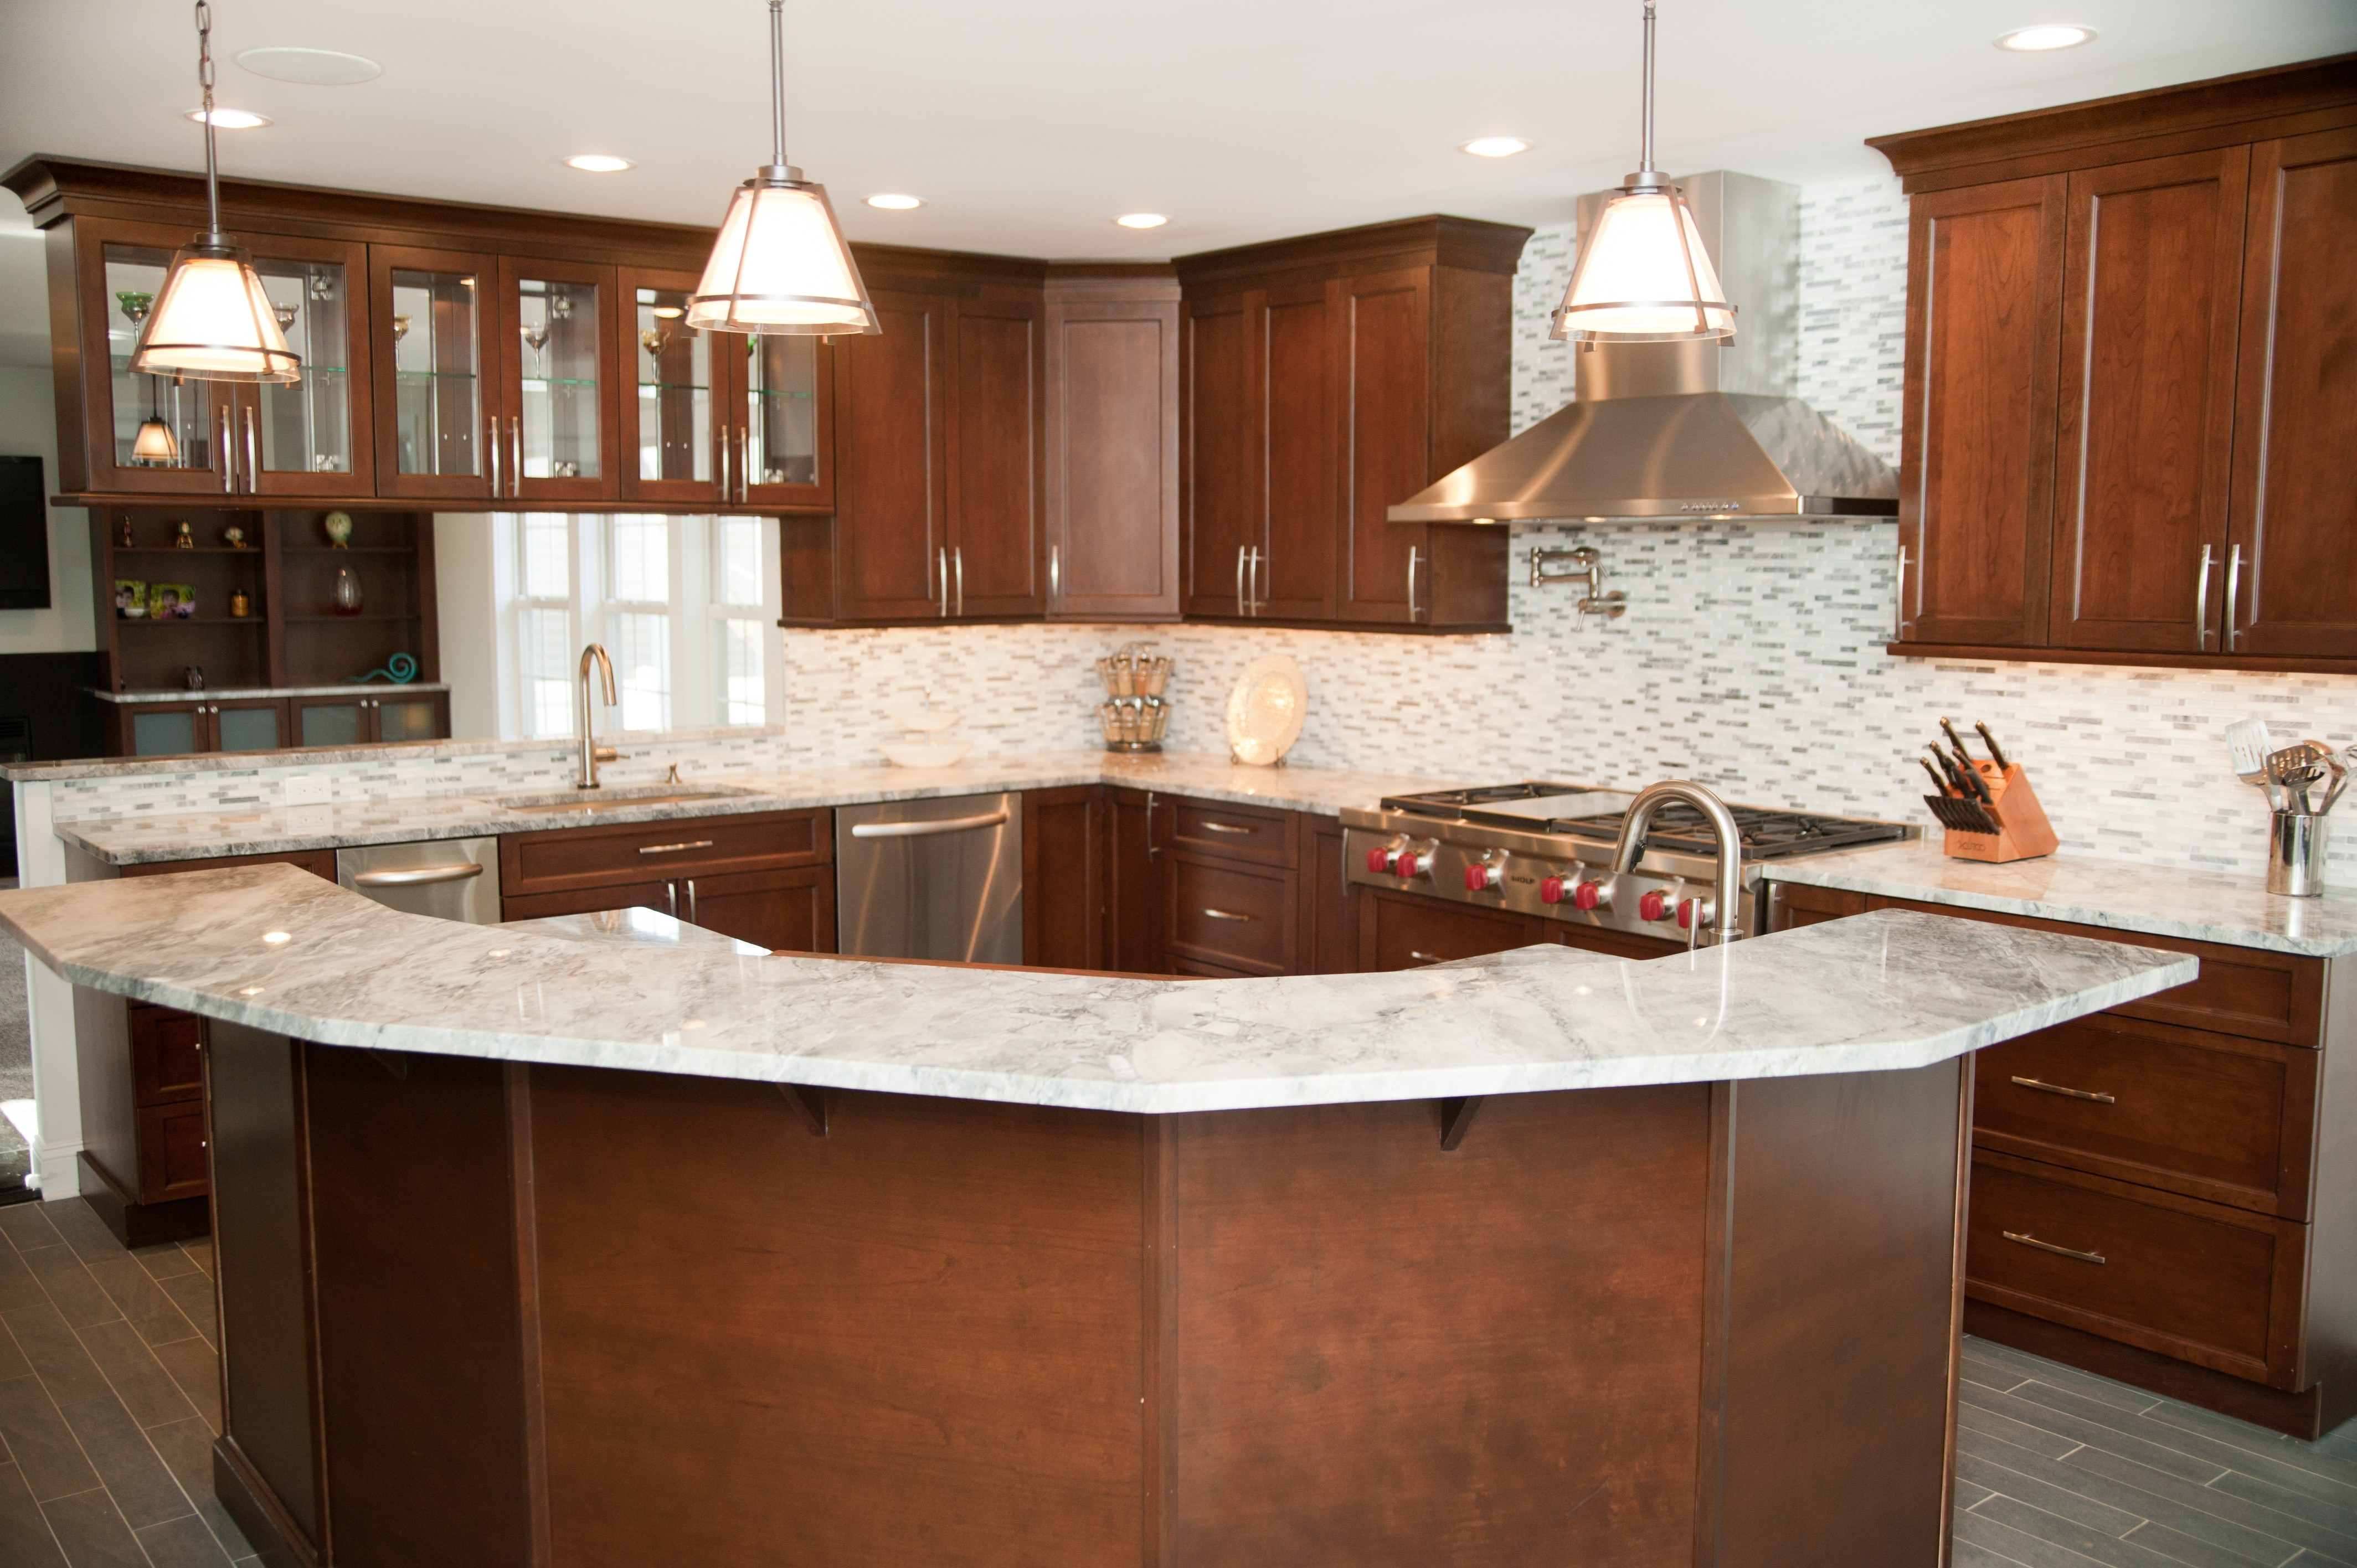 kitchen planners outdoor grill ultracraft cabinetry design build morris county nj remodeling from the 17